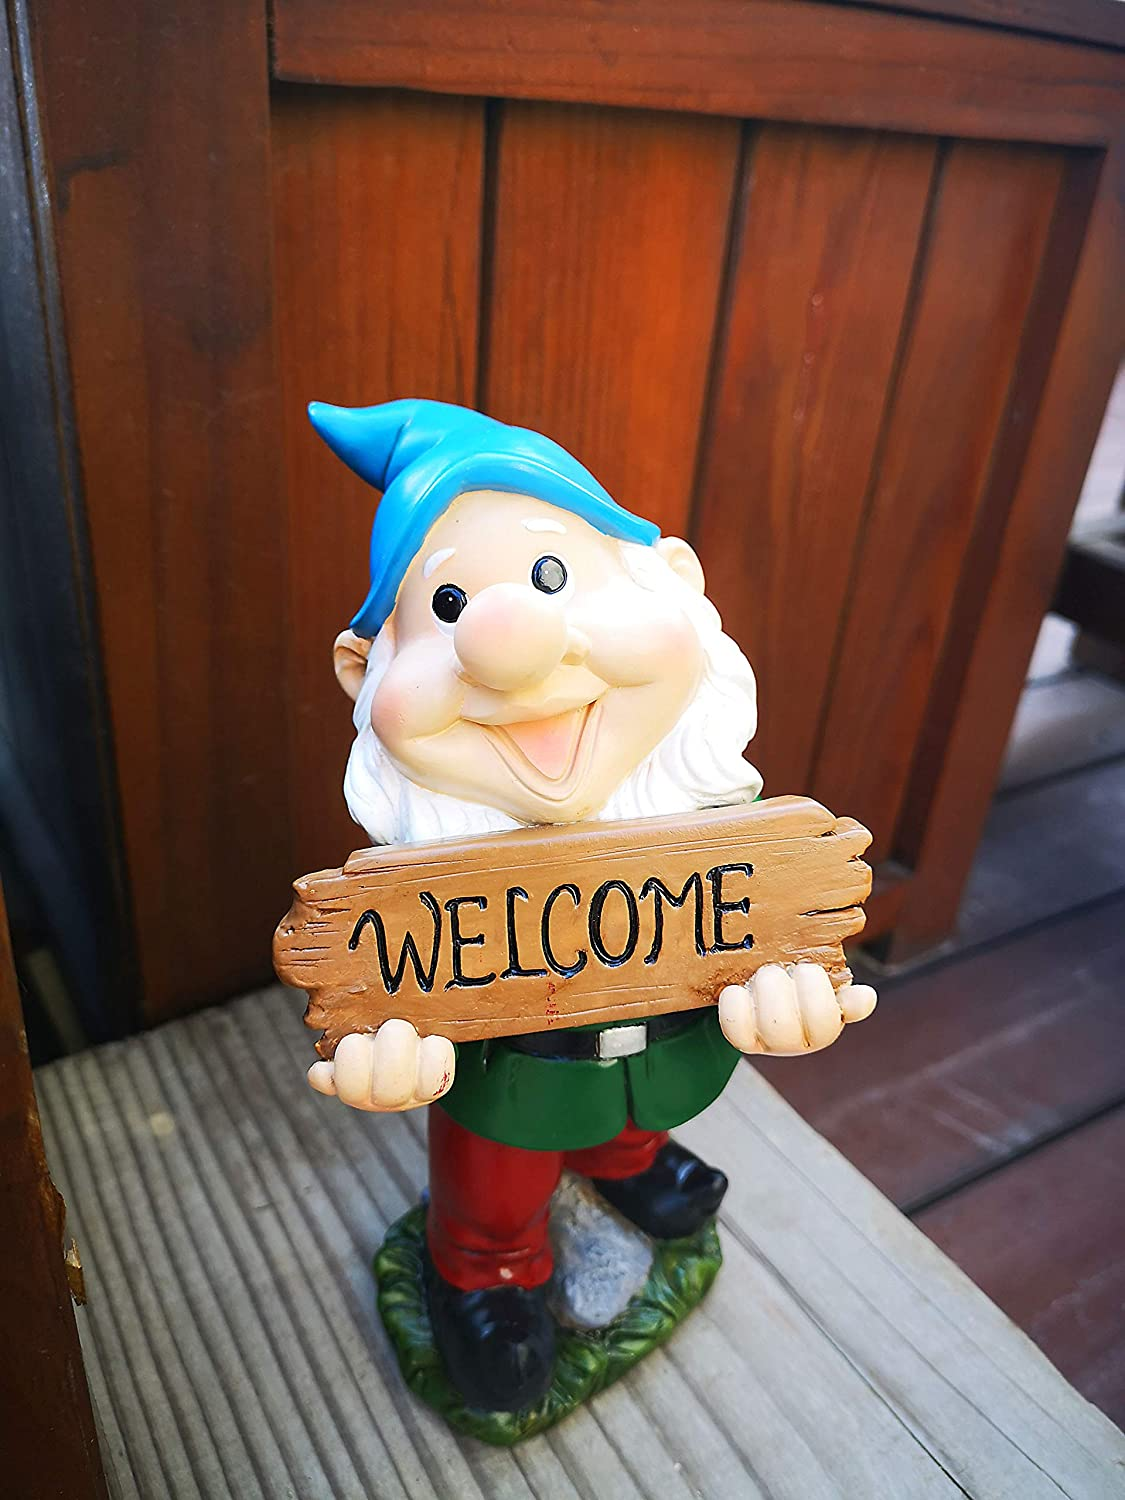 """Garden Gnomes Outdoor Resin Decoration for Lawn Patio 7.7"""" Tall Gnome Figurine Welcome Sign"""